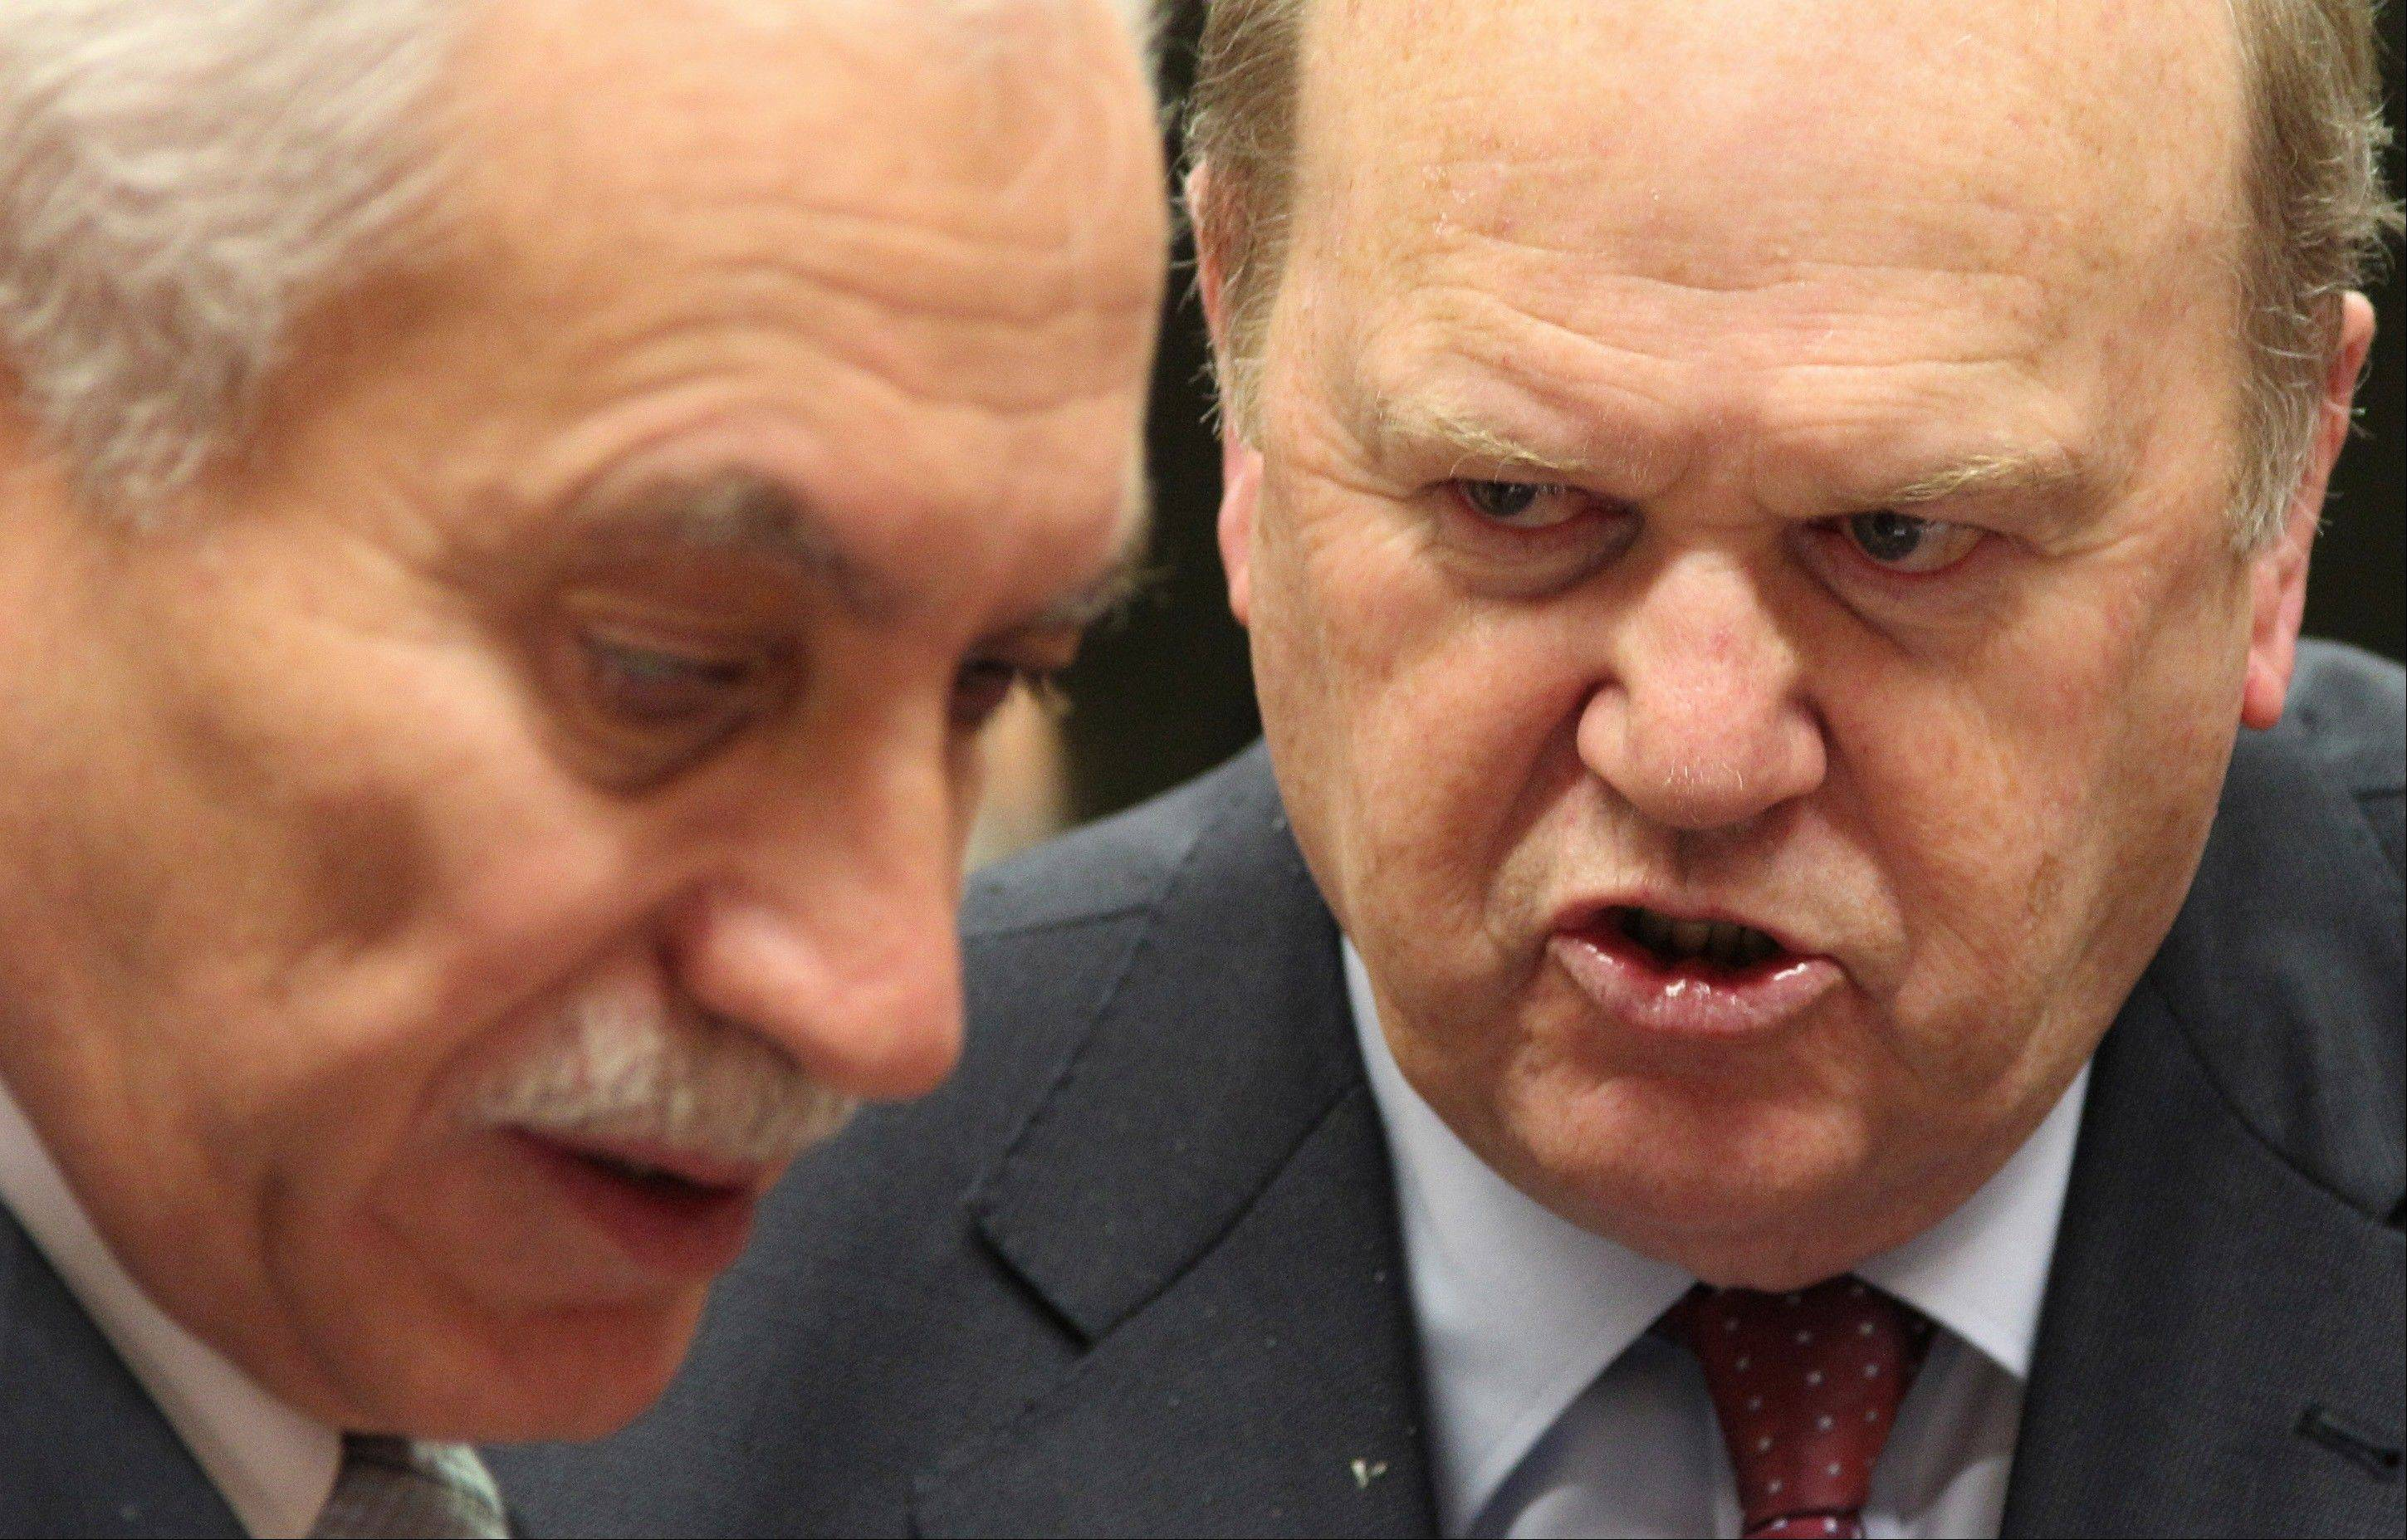 Irish Finance Minister Michael Noonan, right, talks with Cypriot Finance Minister and President of the EU rotating Council Vassos Chiarly Tuesday during the EU finance ministers meeting at the European Council building in Brussels.